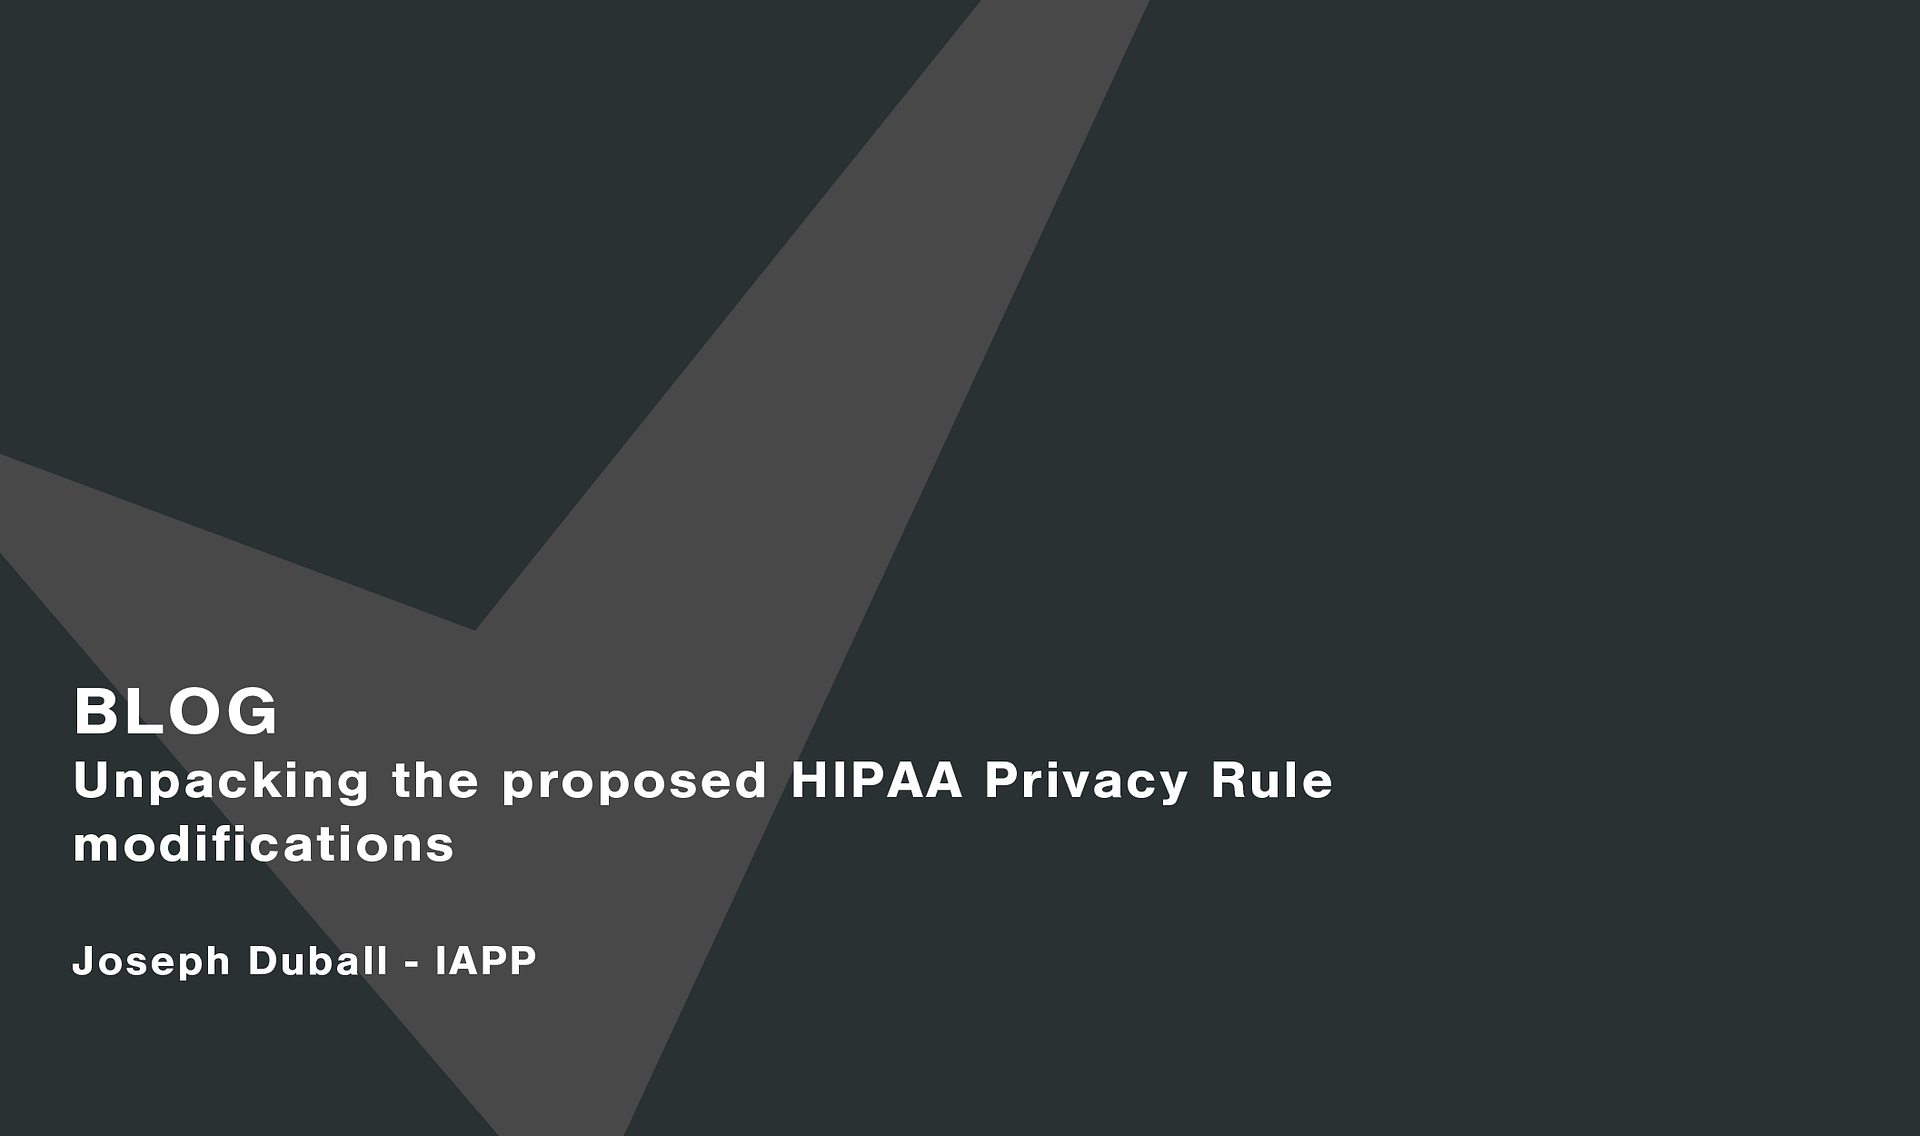 Unpacking-the-proposed-HIPAA-Privacy-Rule-modifications